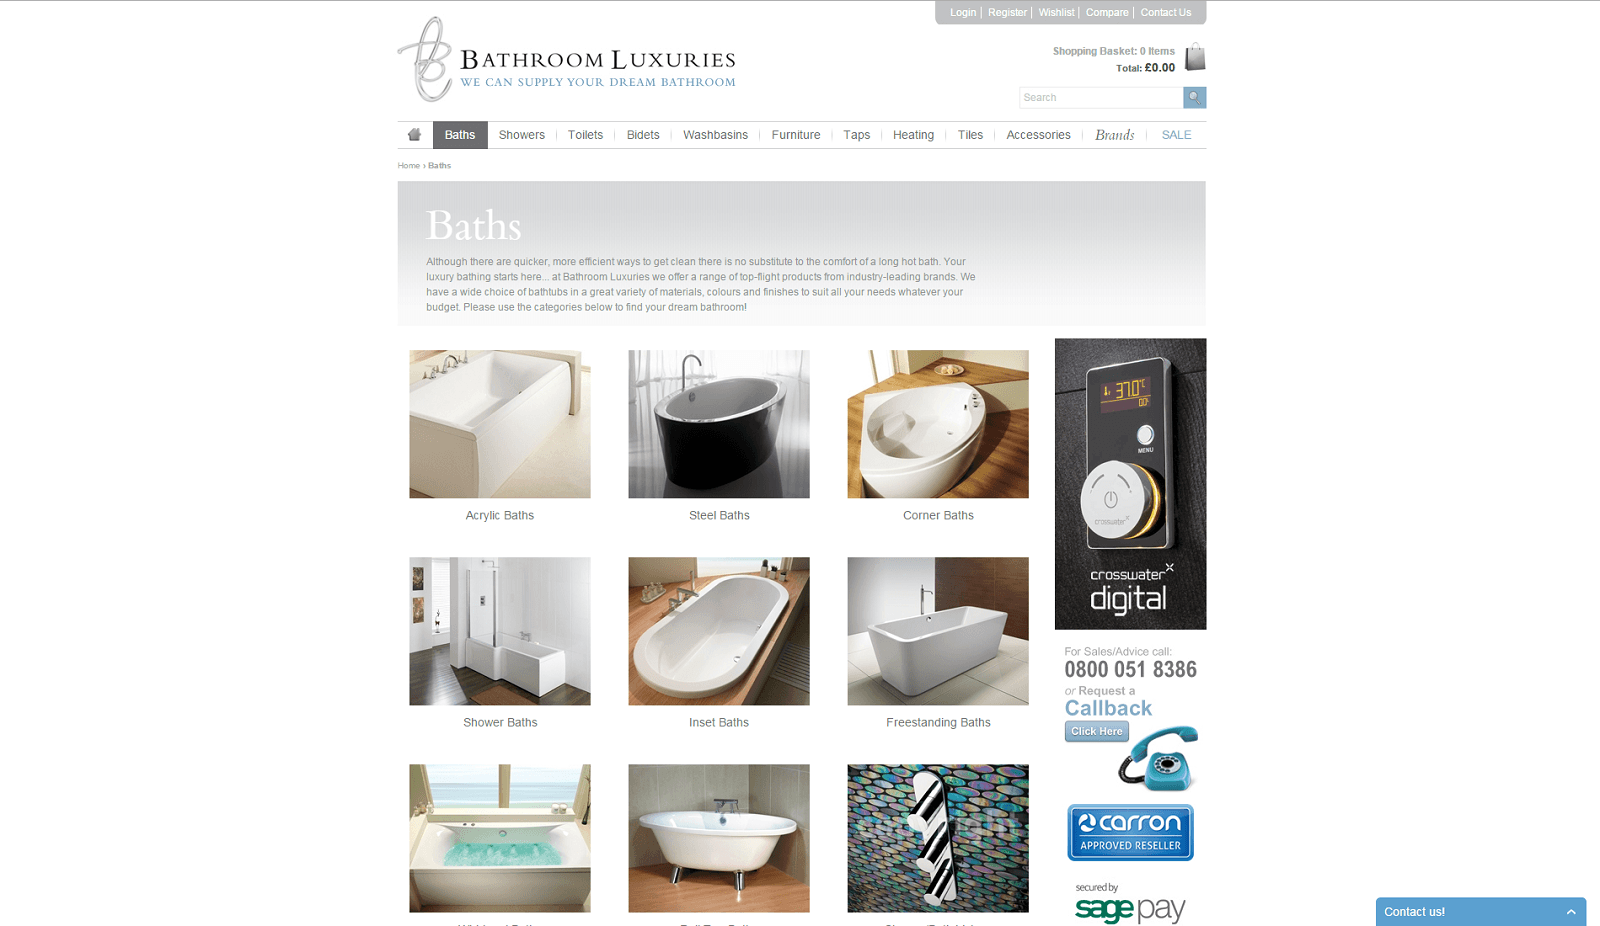 Ecommerce consultancy for Bathroom Luxuries